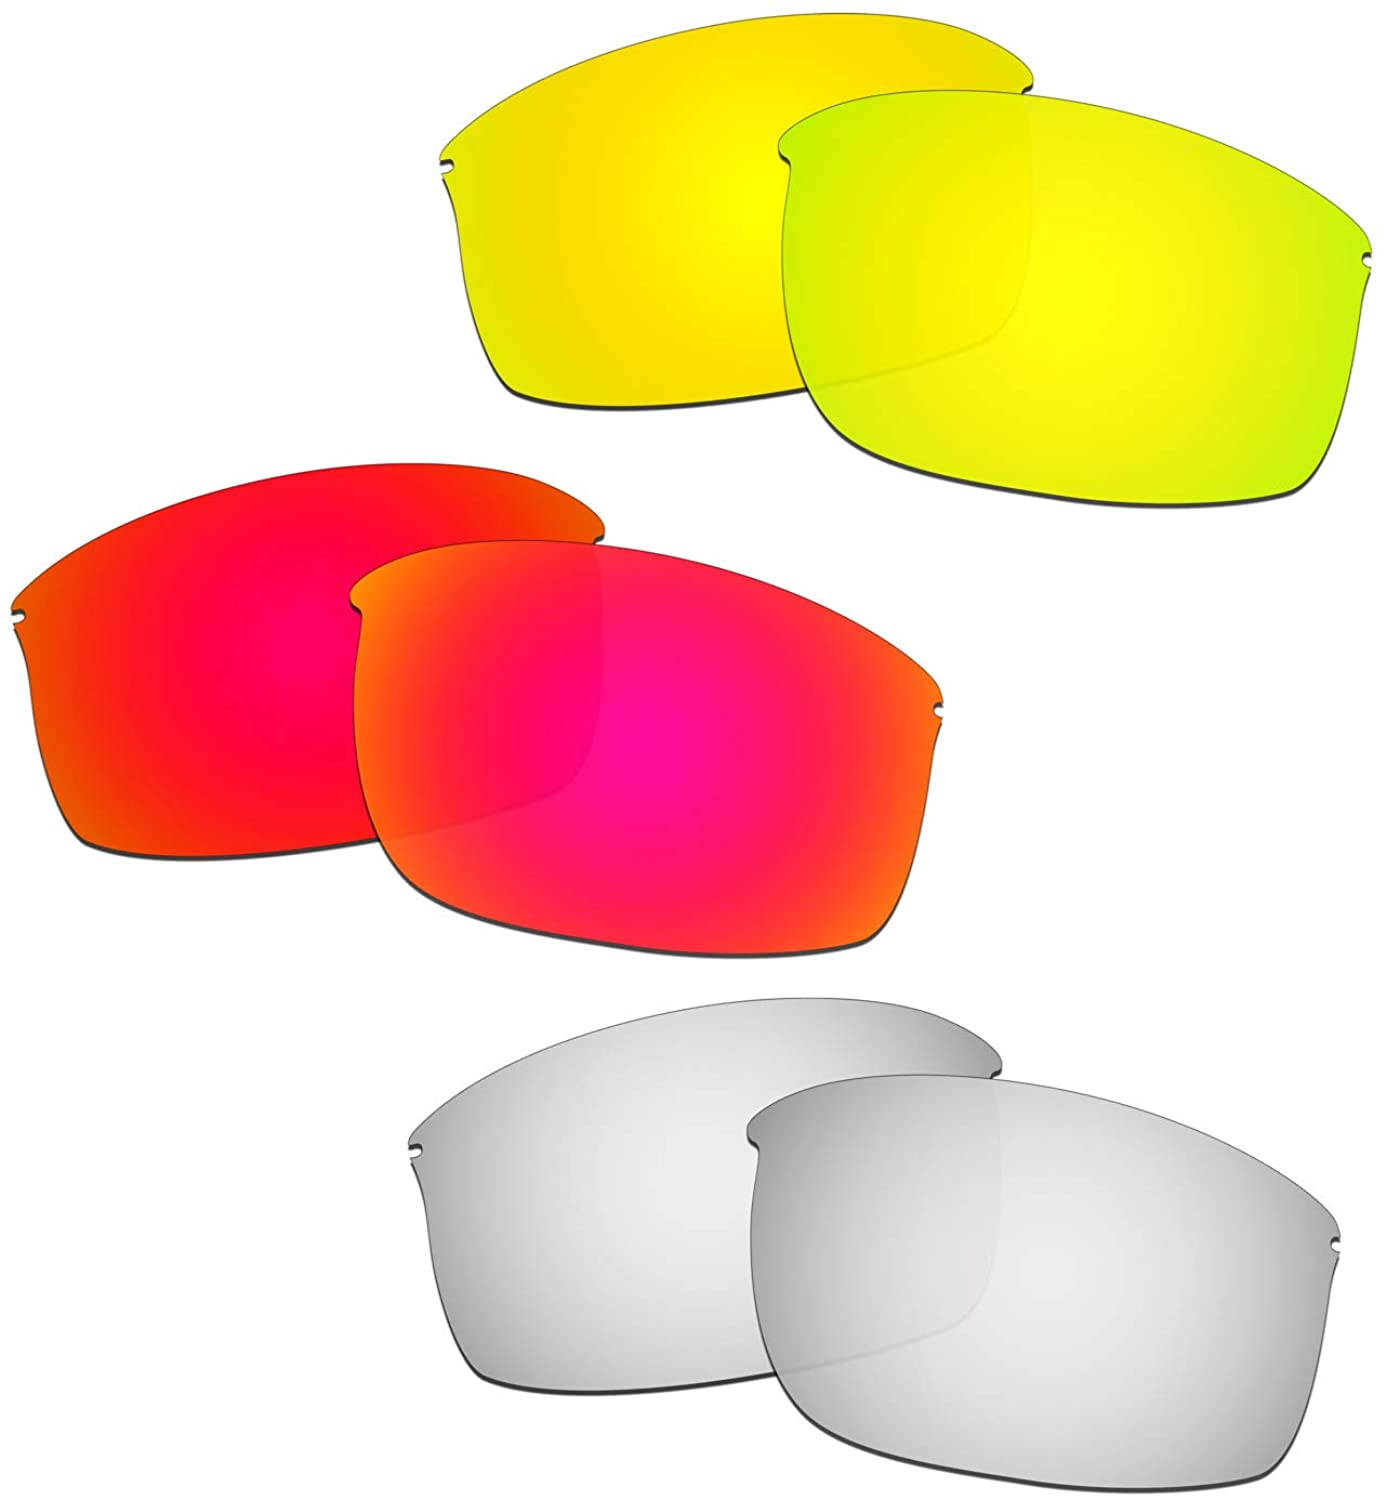 HKUCO Reinforce Replacement Lenses For Oakley Wiretap New Red/24K Gold/Titanium Sunglasses